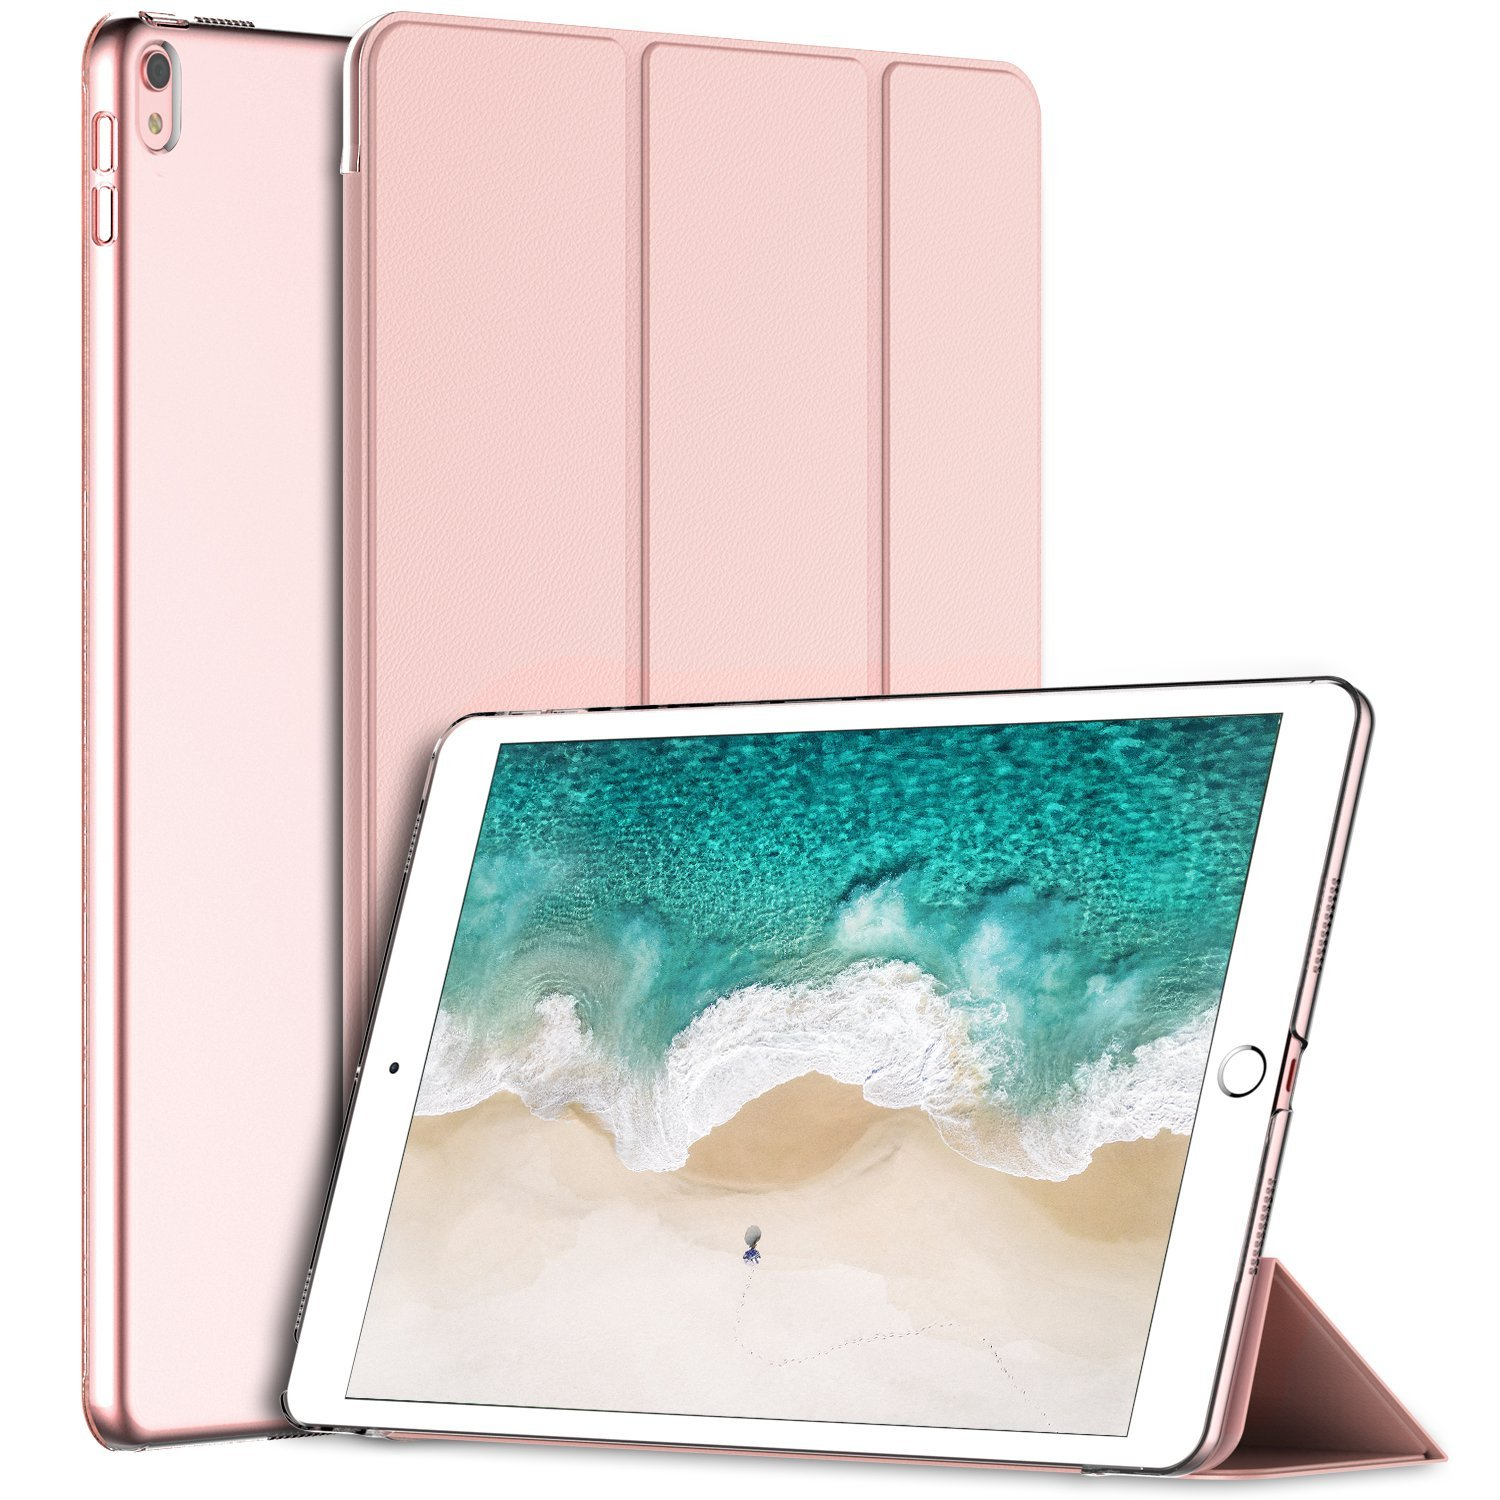 iPad Pro 10.5 Case, SuprJETech Case Cover for the New Apple Inch 2017 Model with Auto Sleep/Wake (Rose Gold) - Walmart.com